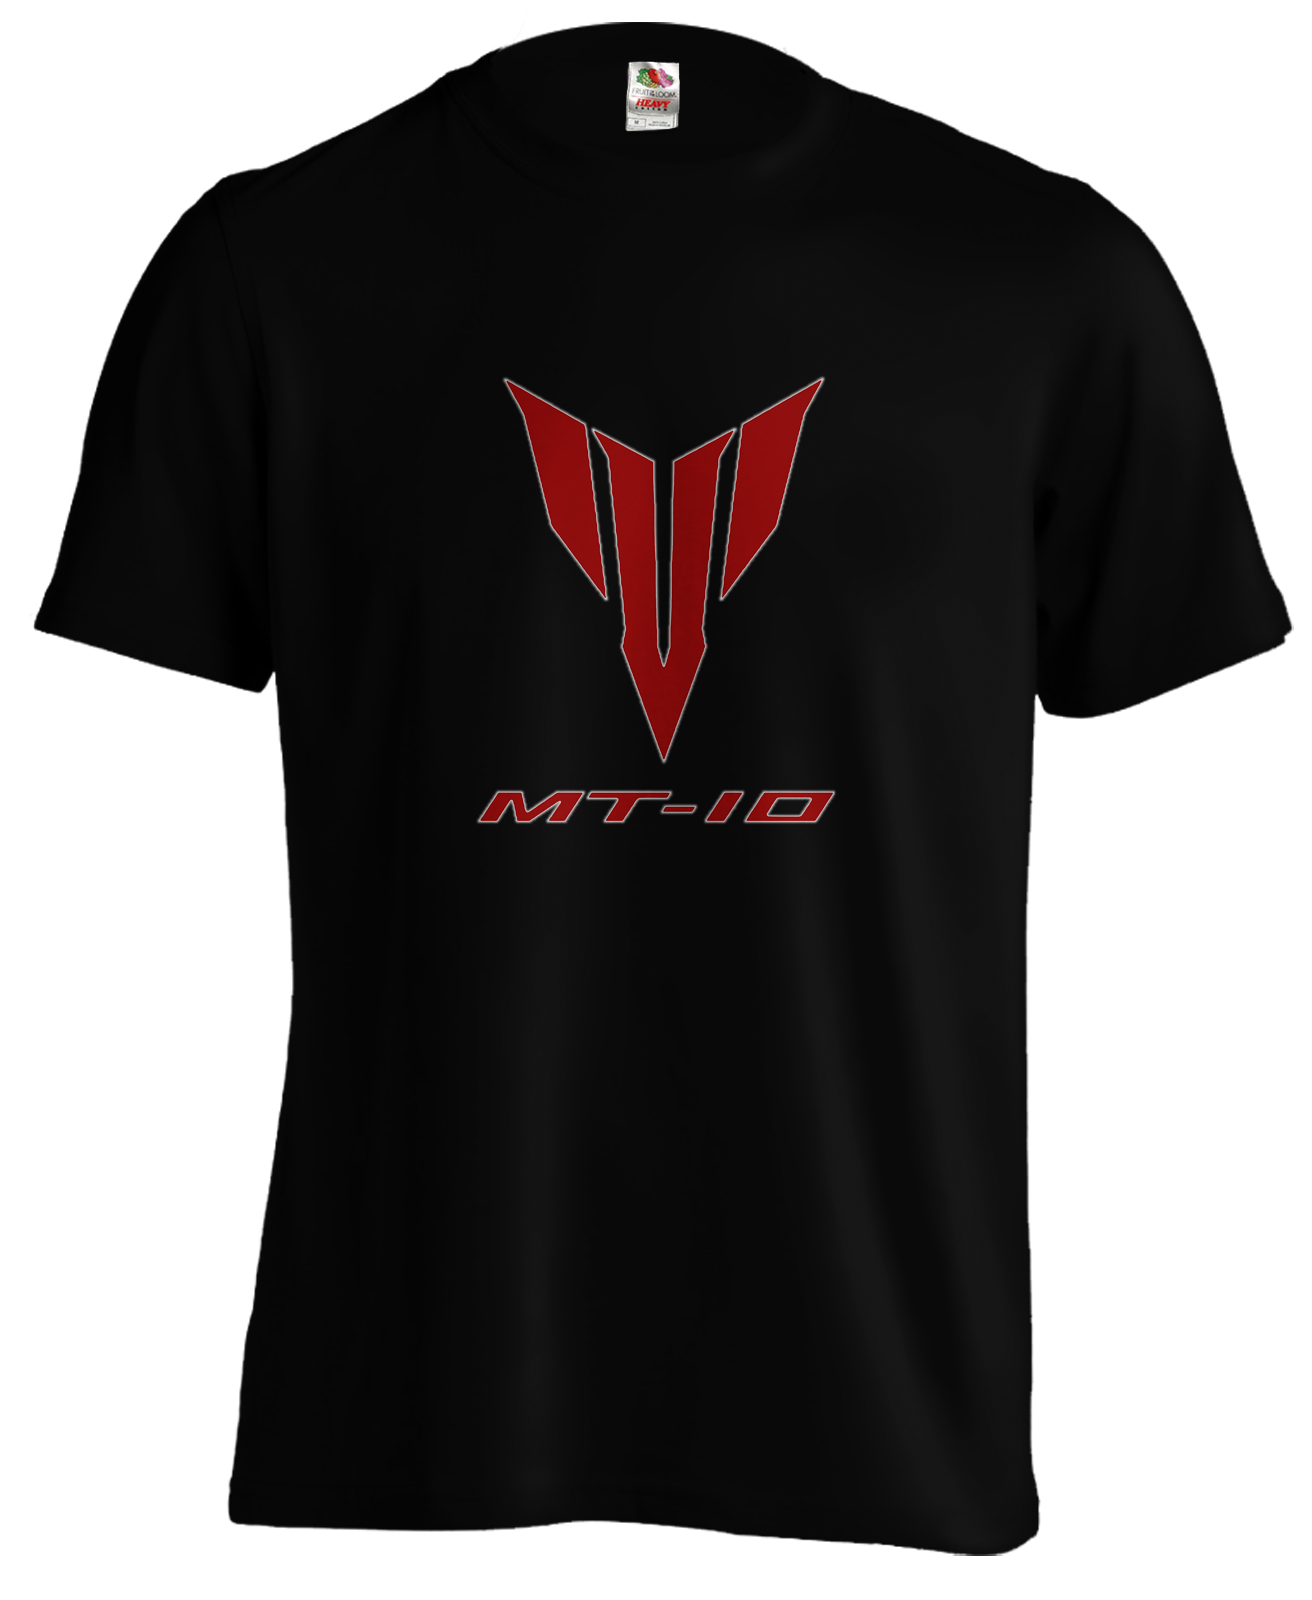 MT 10 MT10 Yamaha Biker High Weight T Shirt Soft Vinyl New T Shirts Funny Tops Tee New Unisex Funny Tops in T Shirts from Men 39 s Clothing